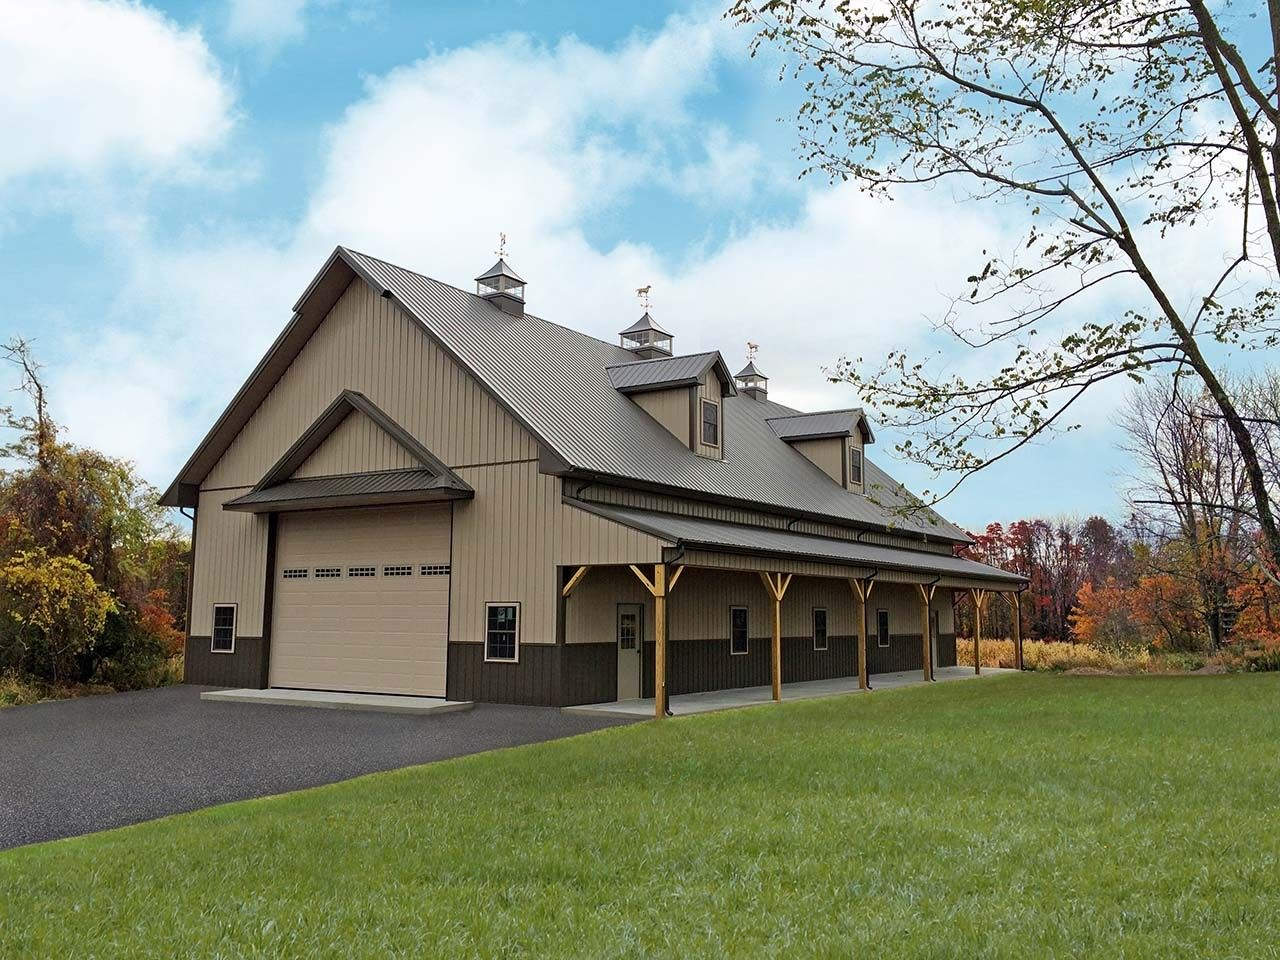 Residential pole building tri state buildings pa nj for Pole barn home plans with garage